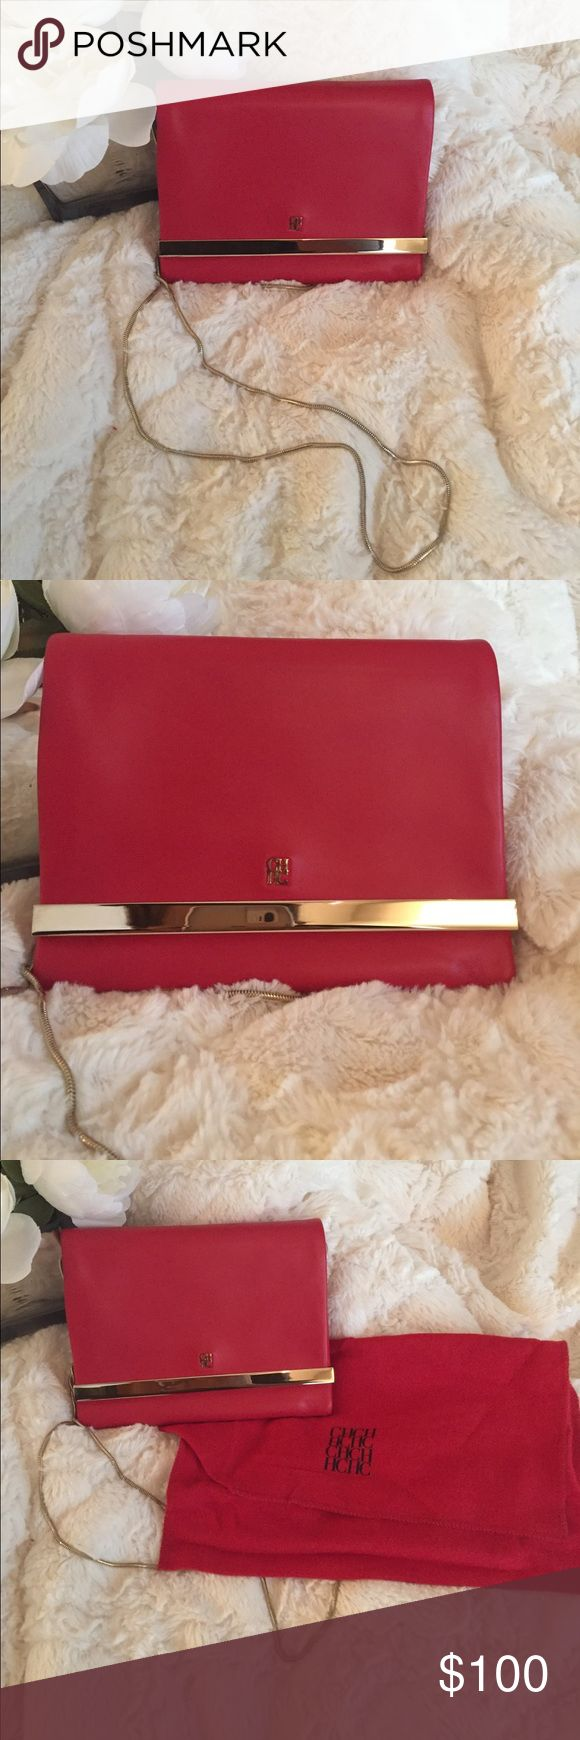 Carolina Herrera Red Purse Beautiful Carolina Herrera Red Evening Bag   New  Never Used   Softest Leather you've ever felt   Always Kept in Dust Bag   Gold Accents   Long Gold Shoulder Strap  Sits on Hip   Perfect for an evening out   👛.           *  I noticed the CH logo has tarnished a bit (most likely able to fix with polish ) & there is a slight dent in leather from chain (both in photos)    Make an Offer   Ask Questions Carolina Herrera Bags Shoulder Bags